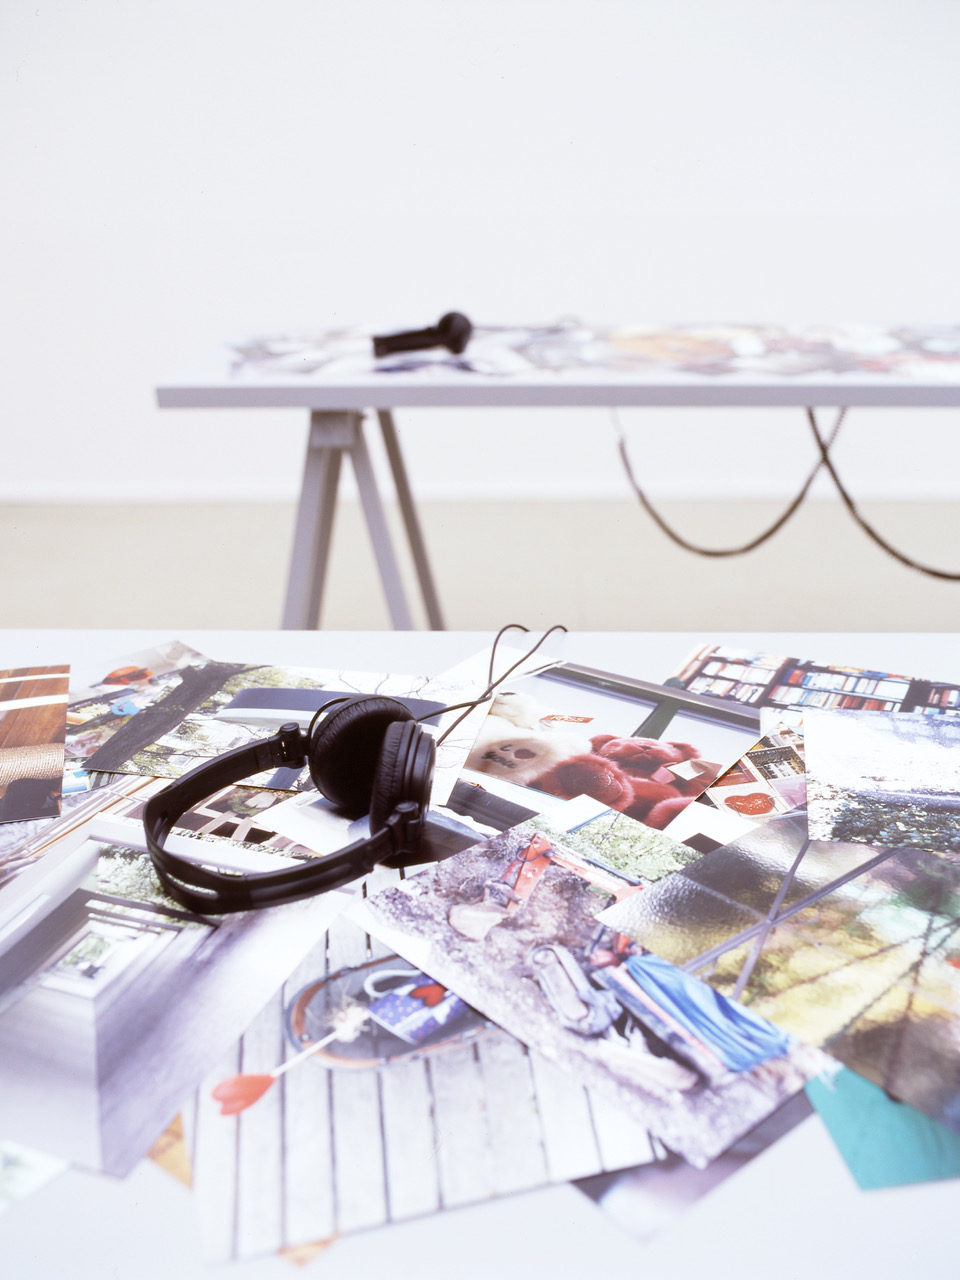 A close-up picture showing the top of one table in the PLOTS installation, which looks like it is printed with color photographs of a variety of everyday things. There are headphones on the table.